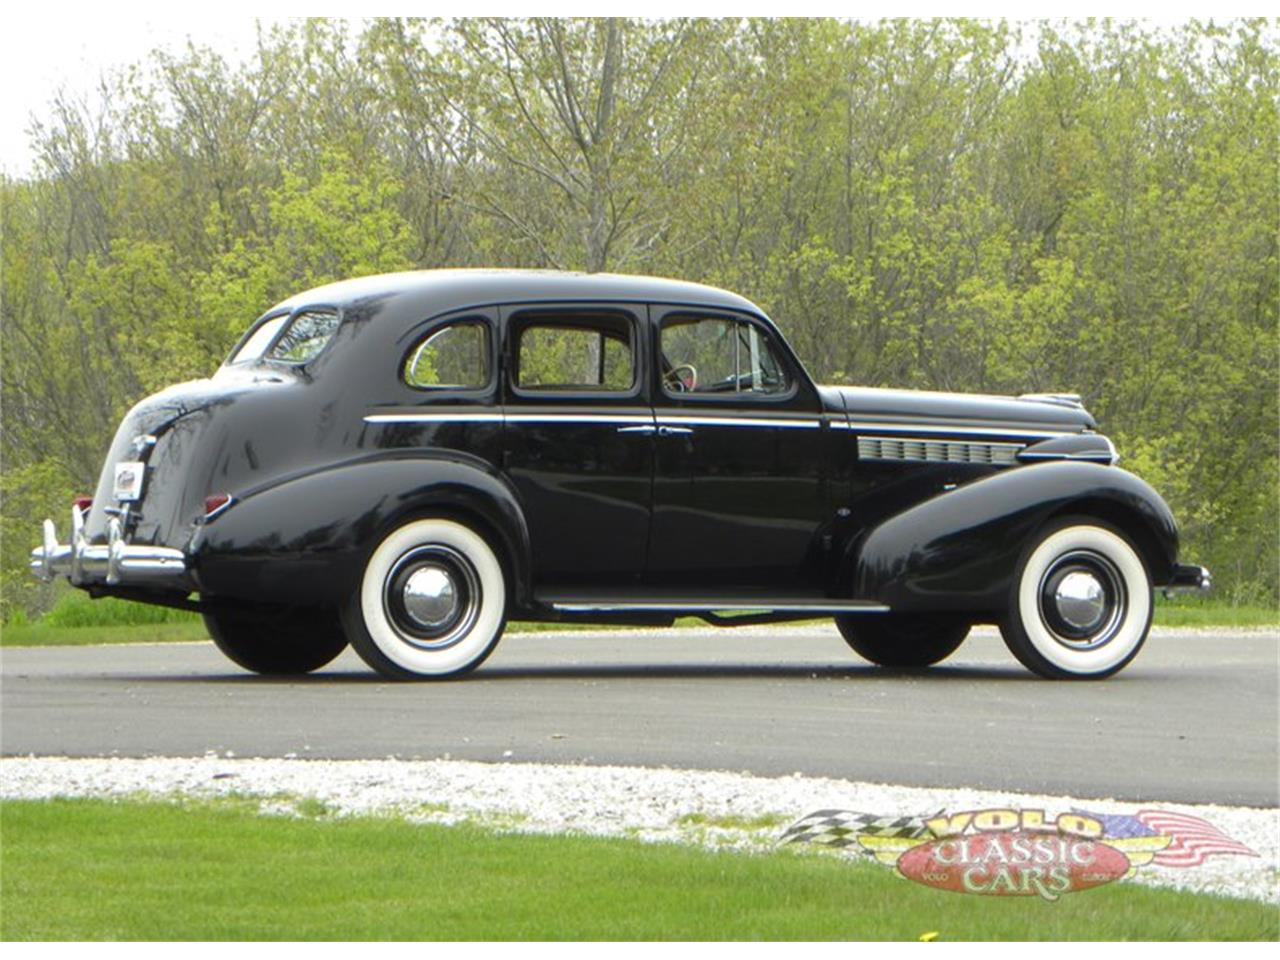 Large Picture of Classic 1938 Buick Special located in Illinois - $26,500.00 - Q46K